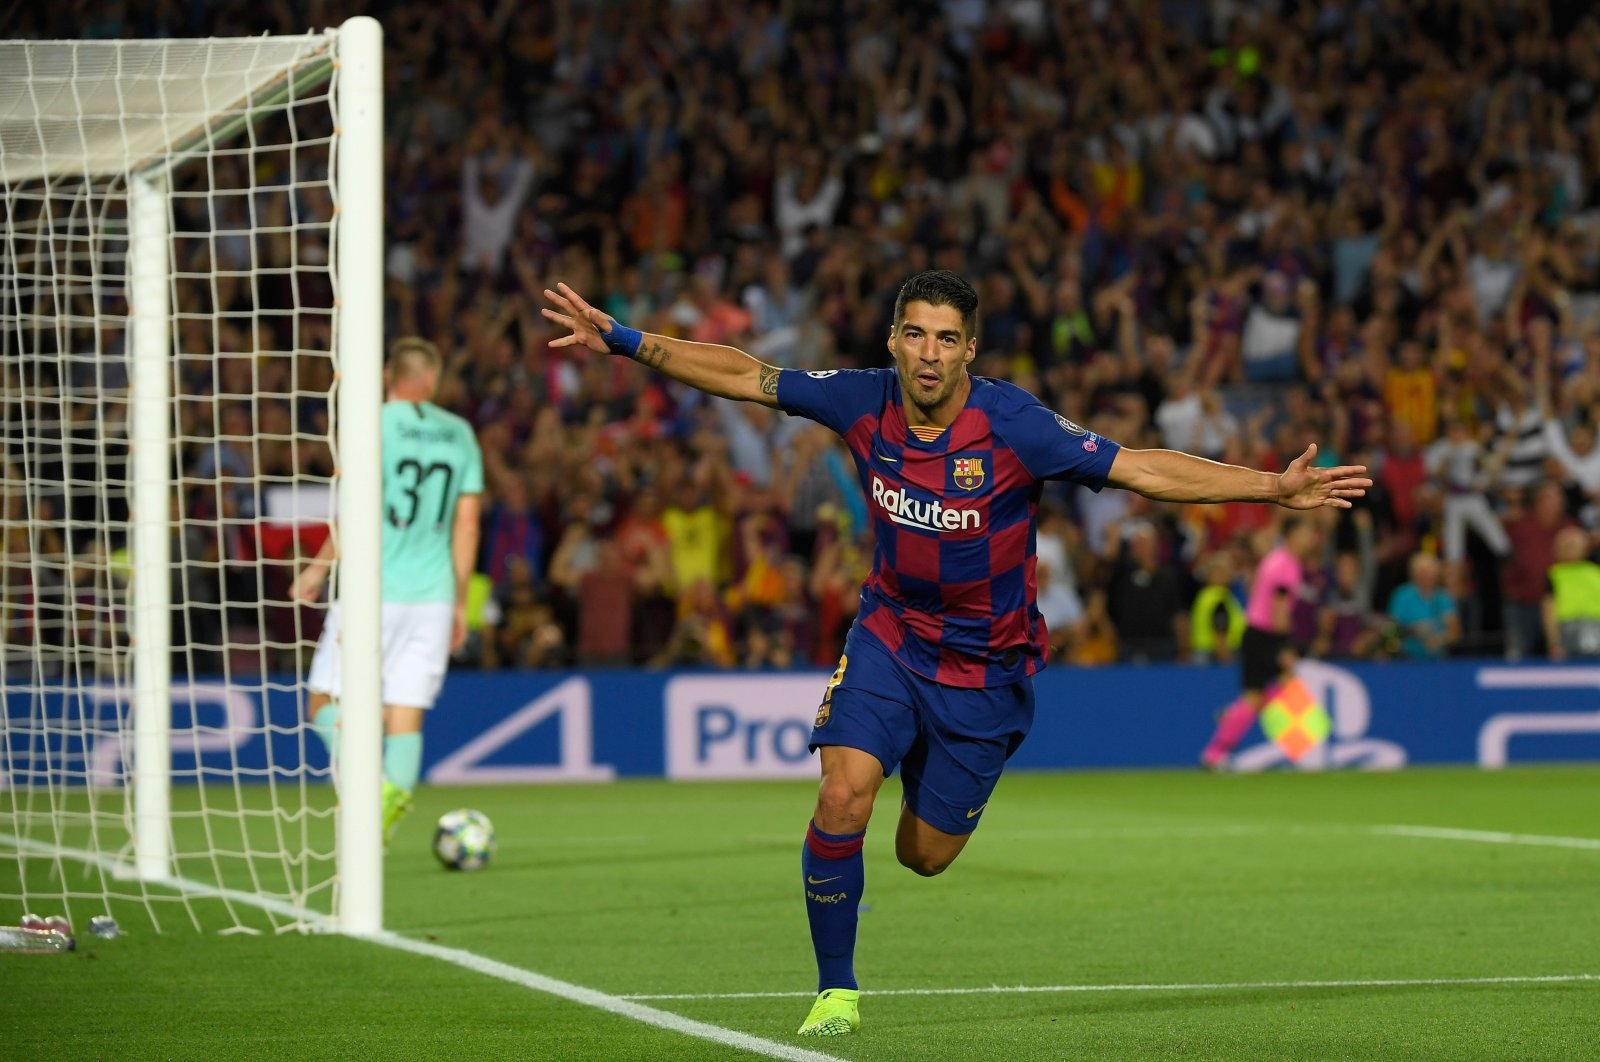 Barcelona's Uruguayan forward Luis Suarez celebrates after scoring the second goal during the UEFA Champions League Group F football match between Barcelona and Inter Milan at the Camp Nou stadium in Barcelona, Oct. 02, 2019. (AFP Photo)